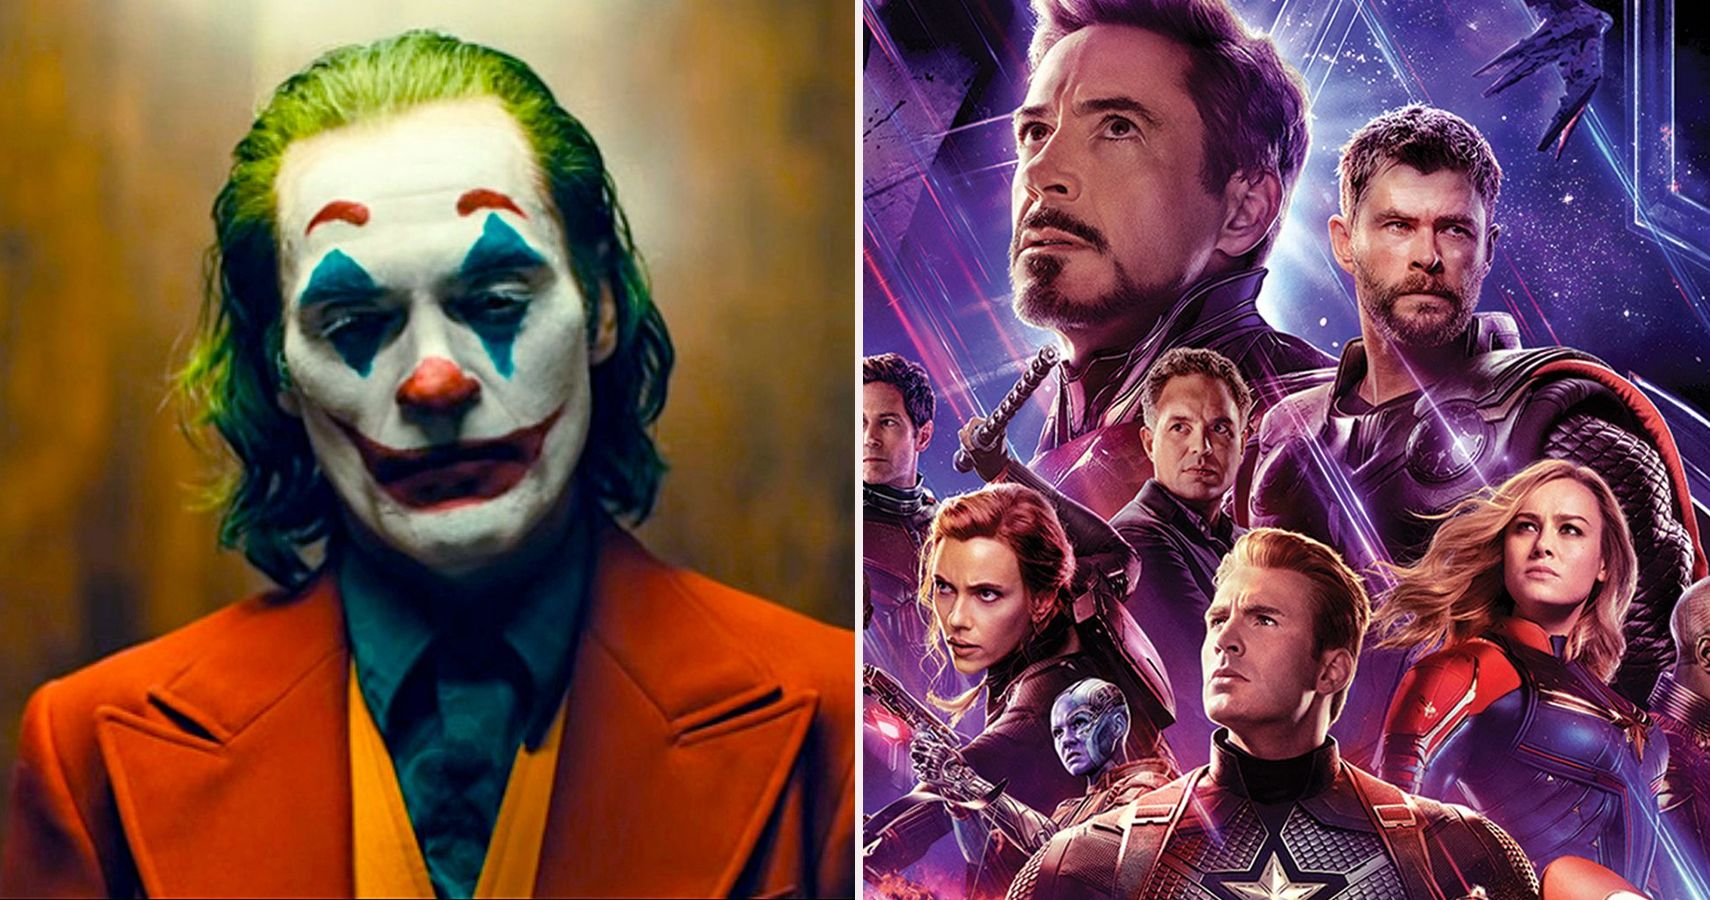 The Top 10 Movies Of 2019 According To Imdb Screenrant